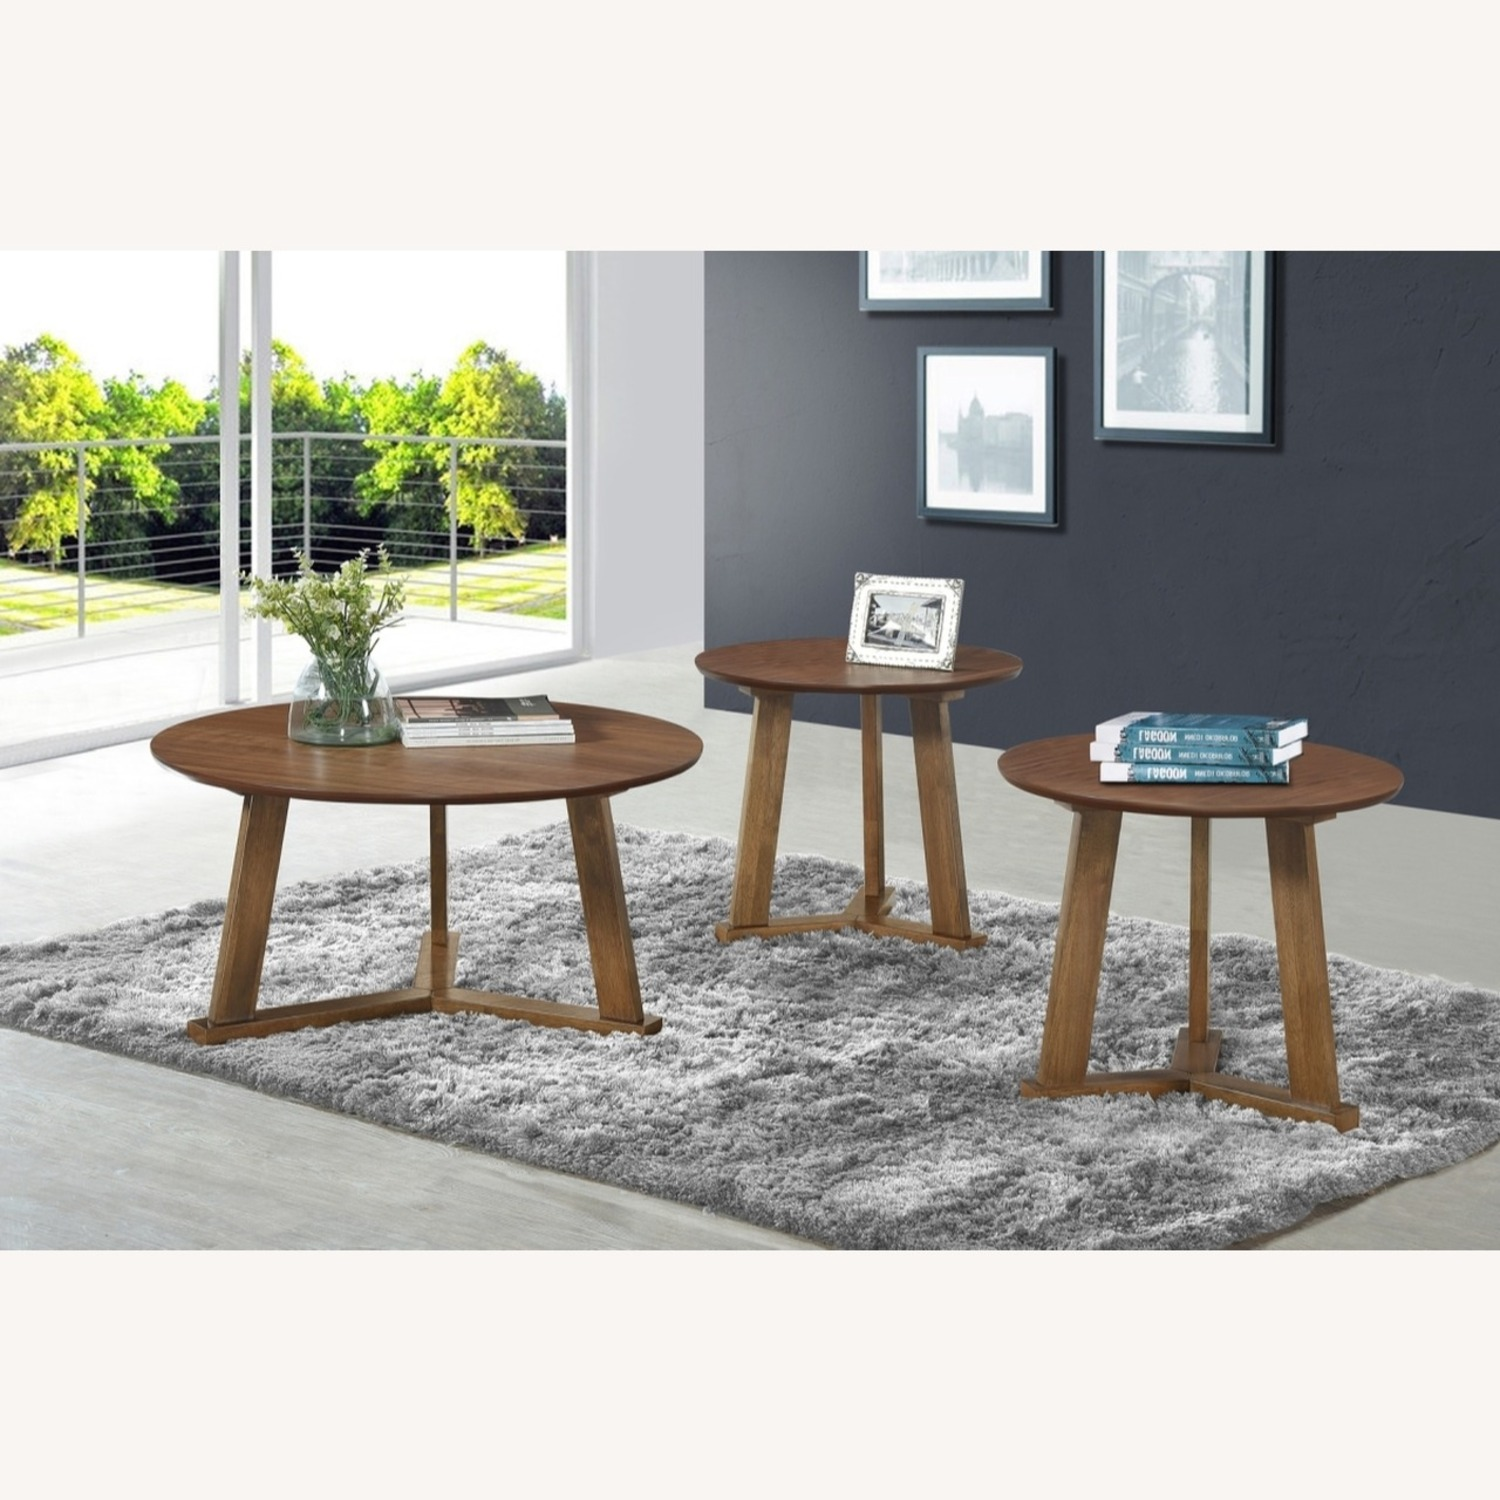 Versitile 3-Piece Occasional Set In Natural Walnut - image-3